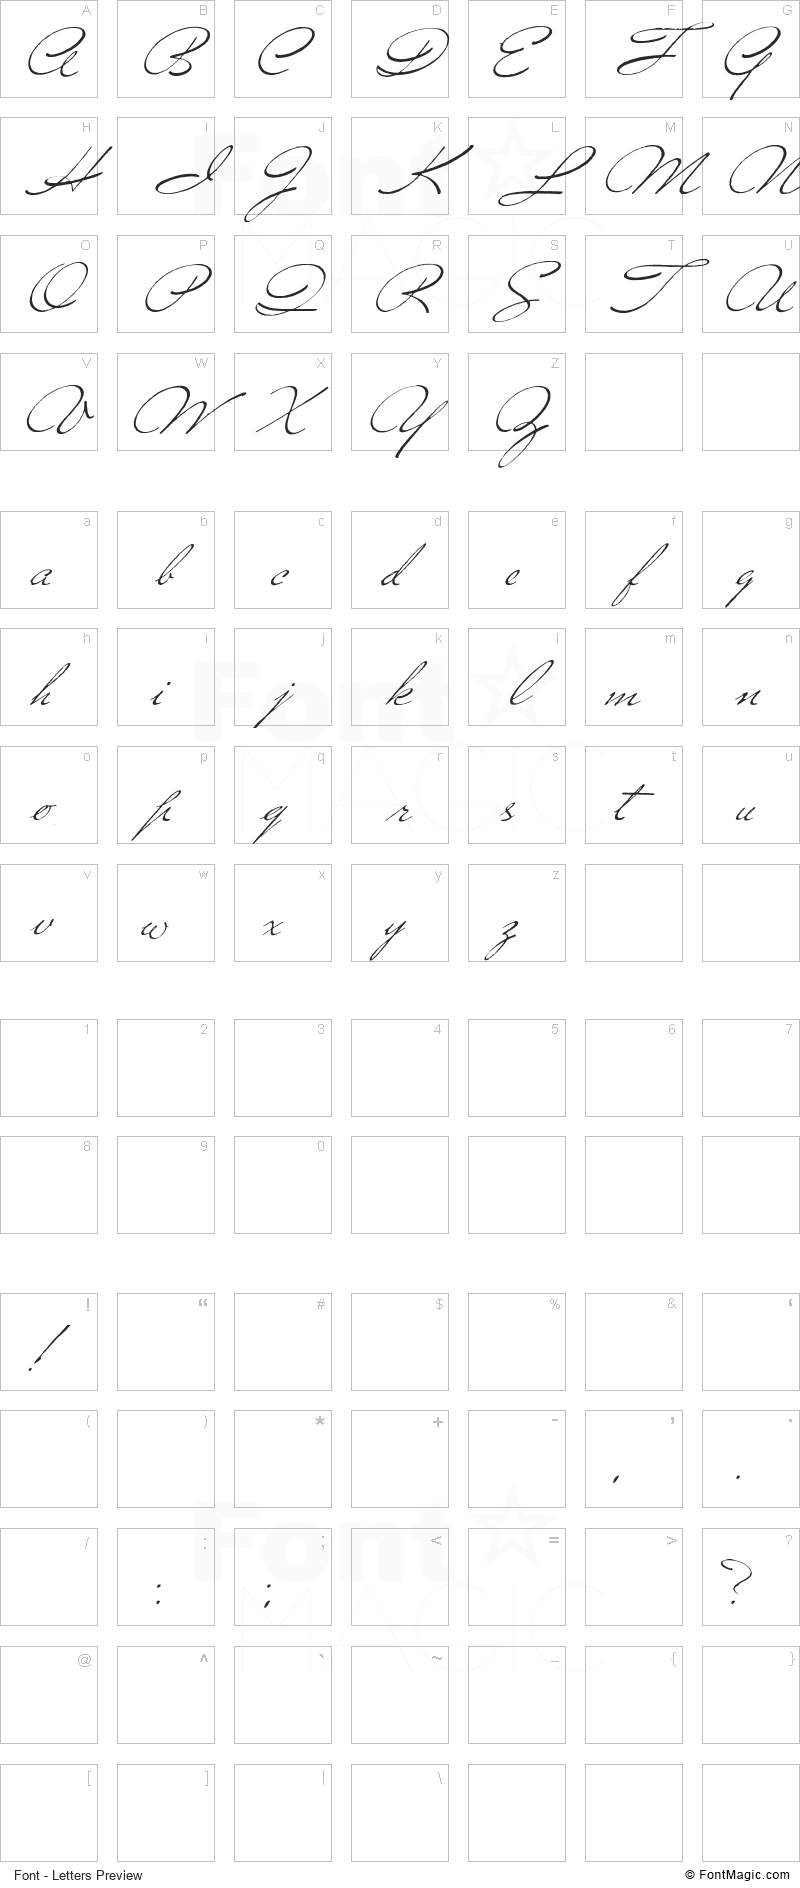 Versitia Font - All Latters Preview Chart